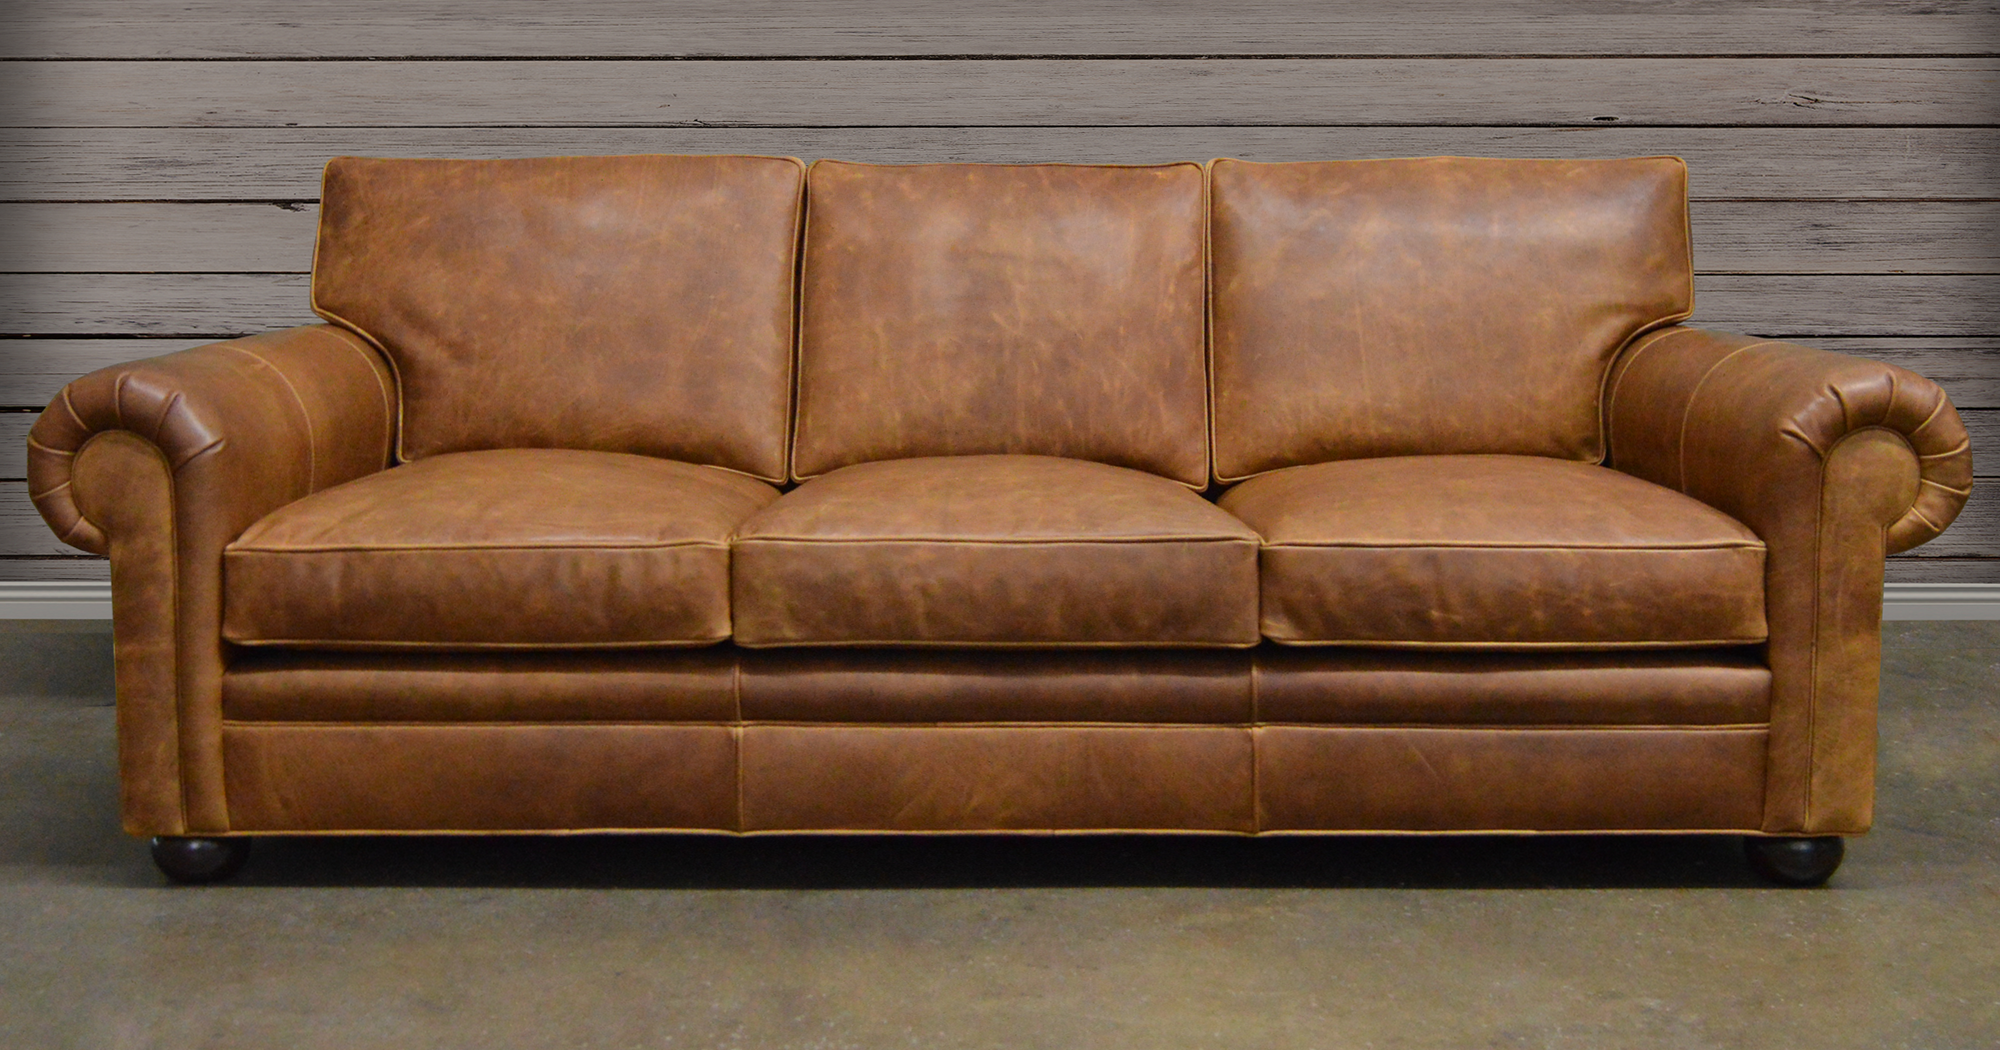 - Leather Furniture –Ruling Vintage Brown Shade For Superb Homes